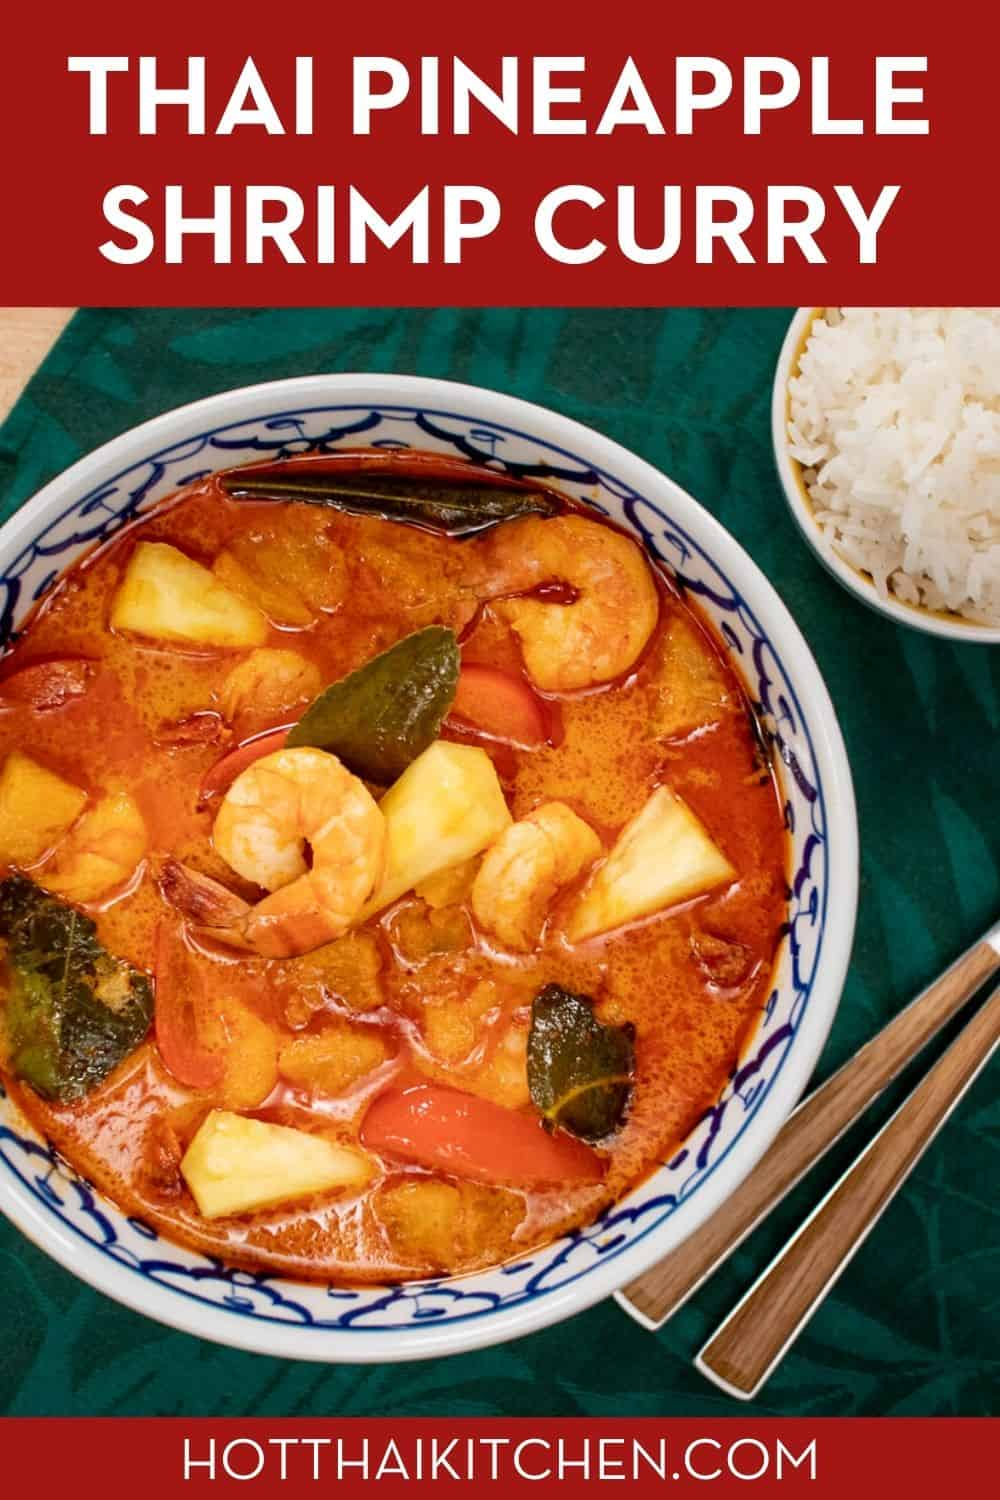 A Pinterest-friendly image of a bowl of red curry with shrimp and pineapple and a side of rice.